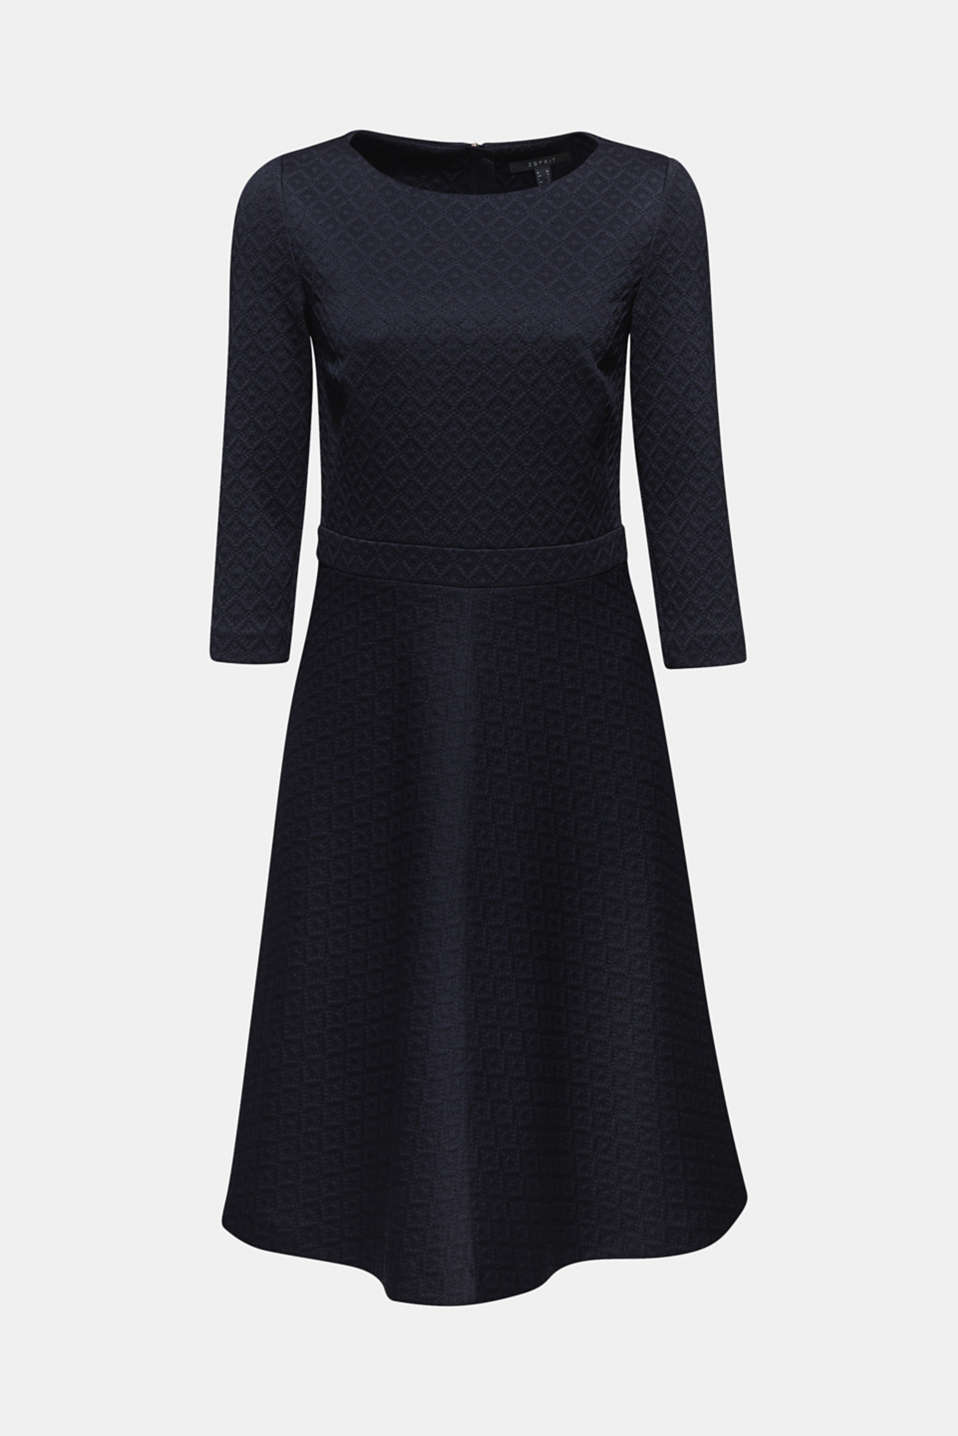 Textured stretch jersey dress, NAVY, detail image number 6